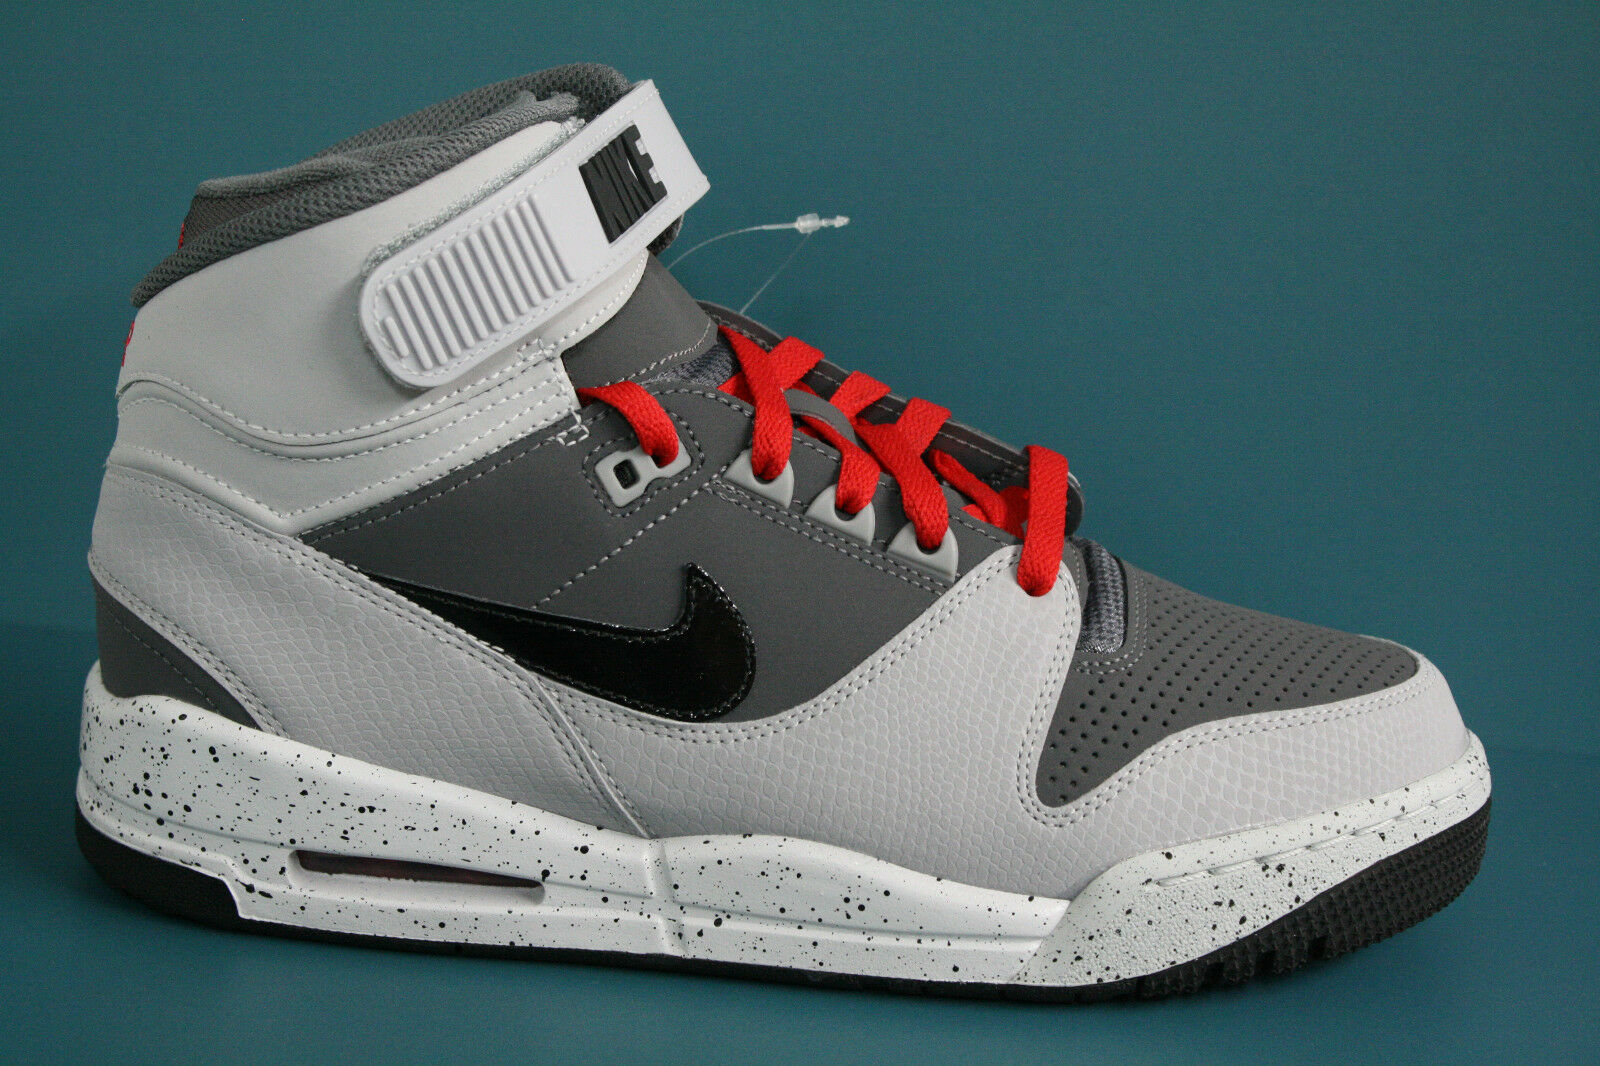 599462-003 Men's Nike Air Revolution High Top Shoe!! Dark Grey-Black-Wolf Grey!! New shoes for men and women, limited time discount